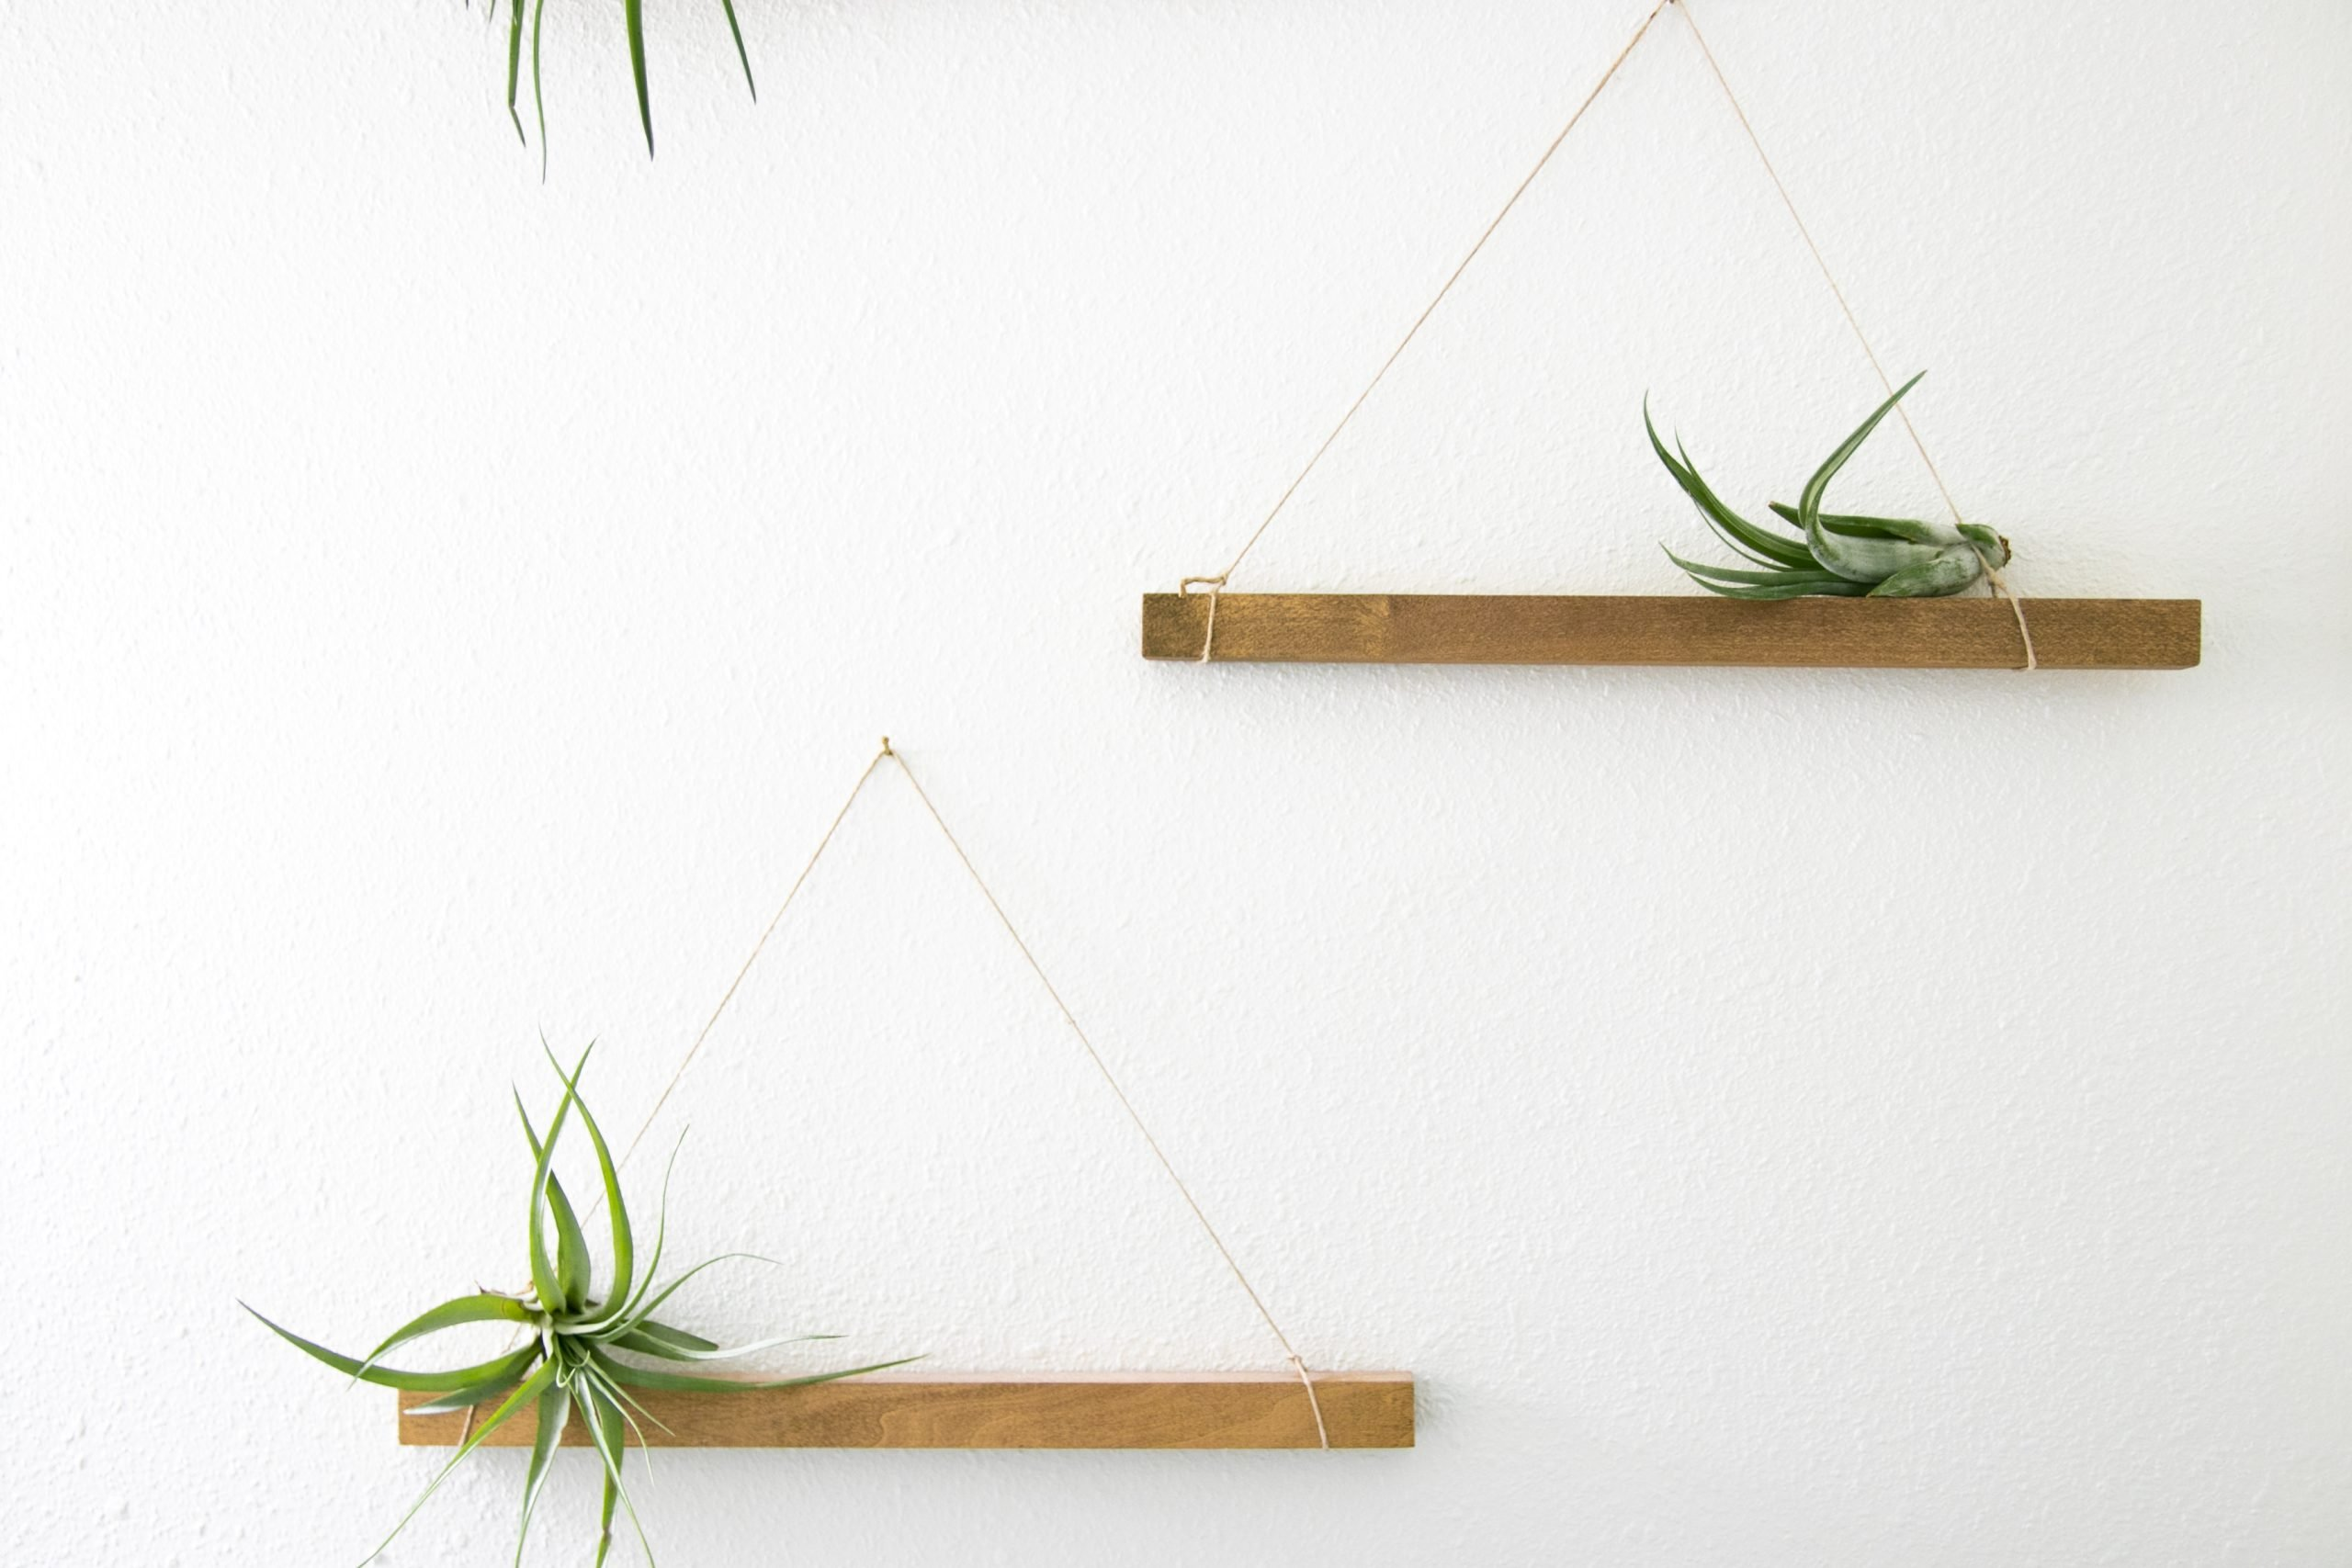 Free Stock Photo of Unpotted Succulent Plants On Hanging Wooden Shelves